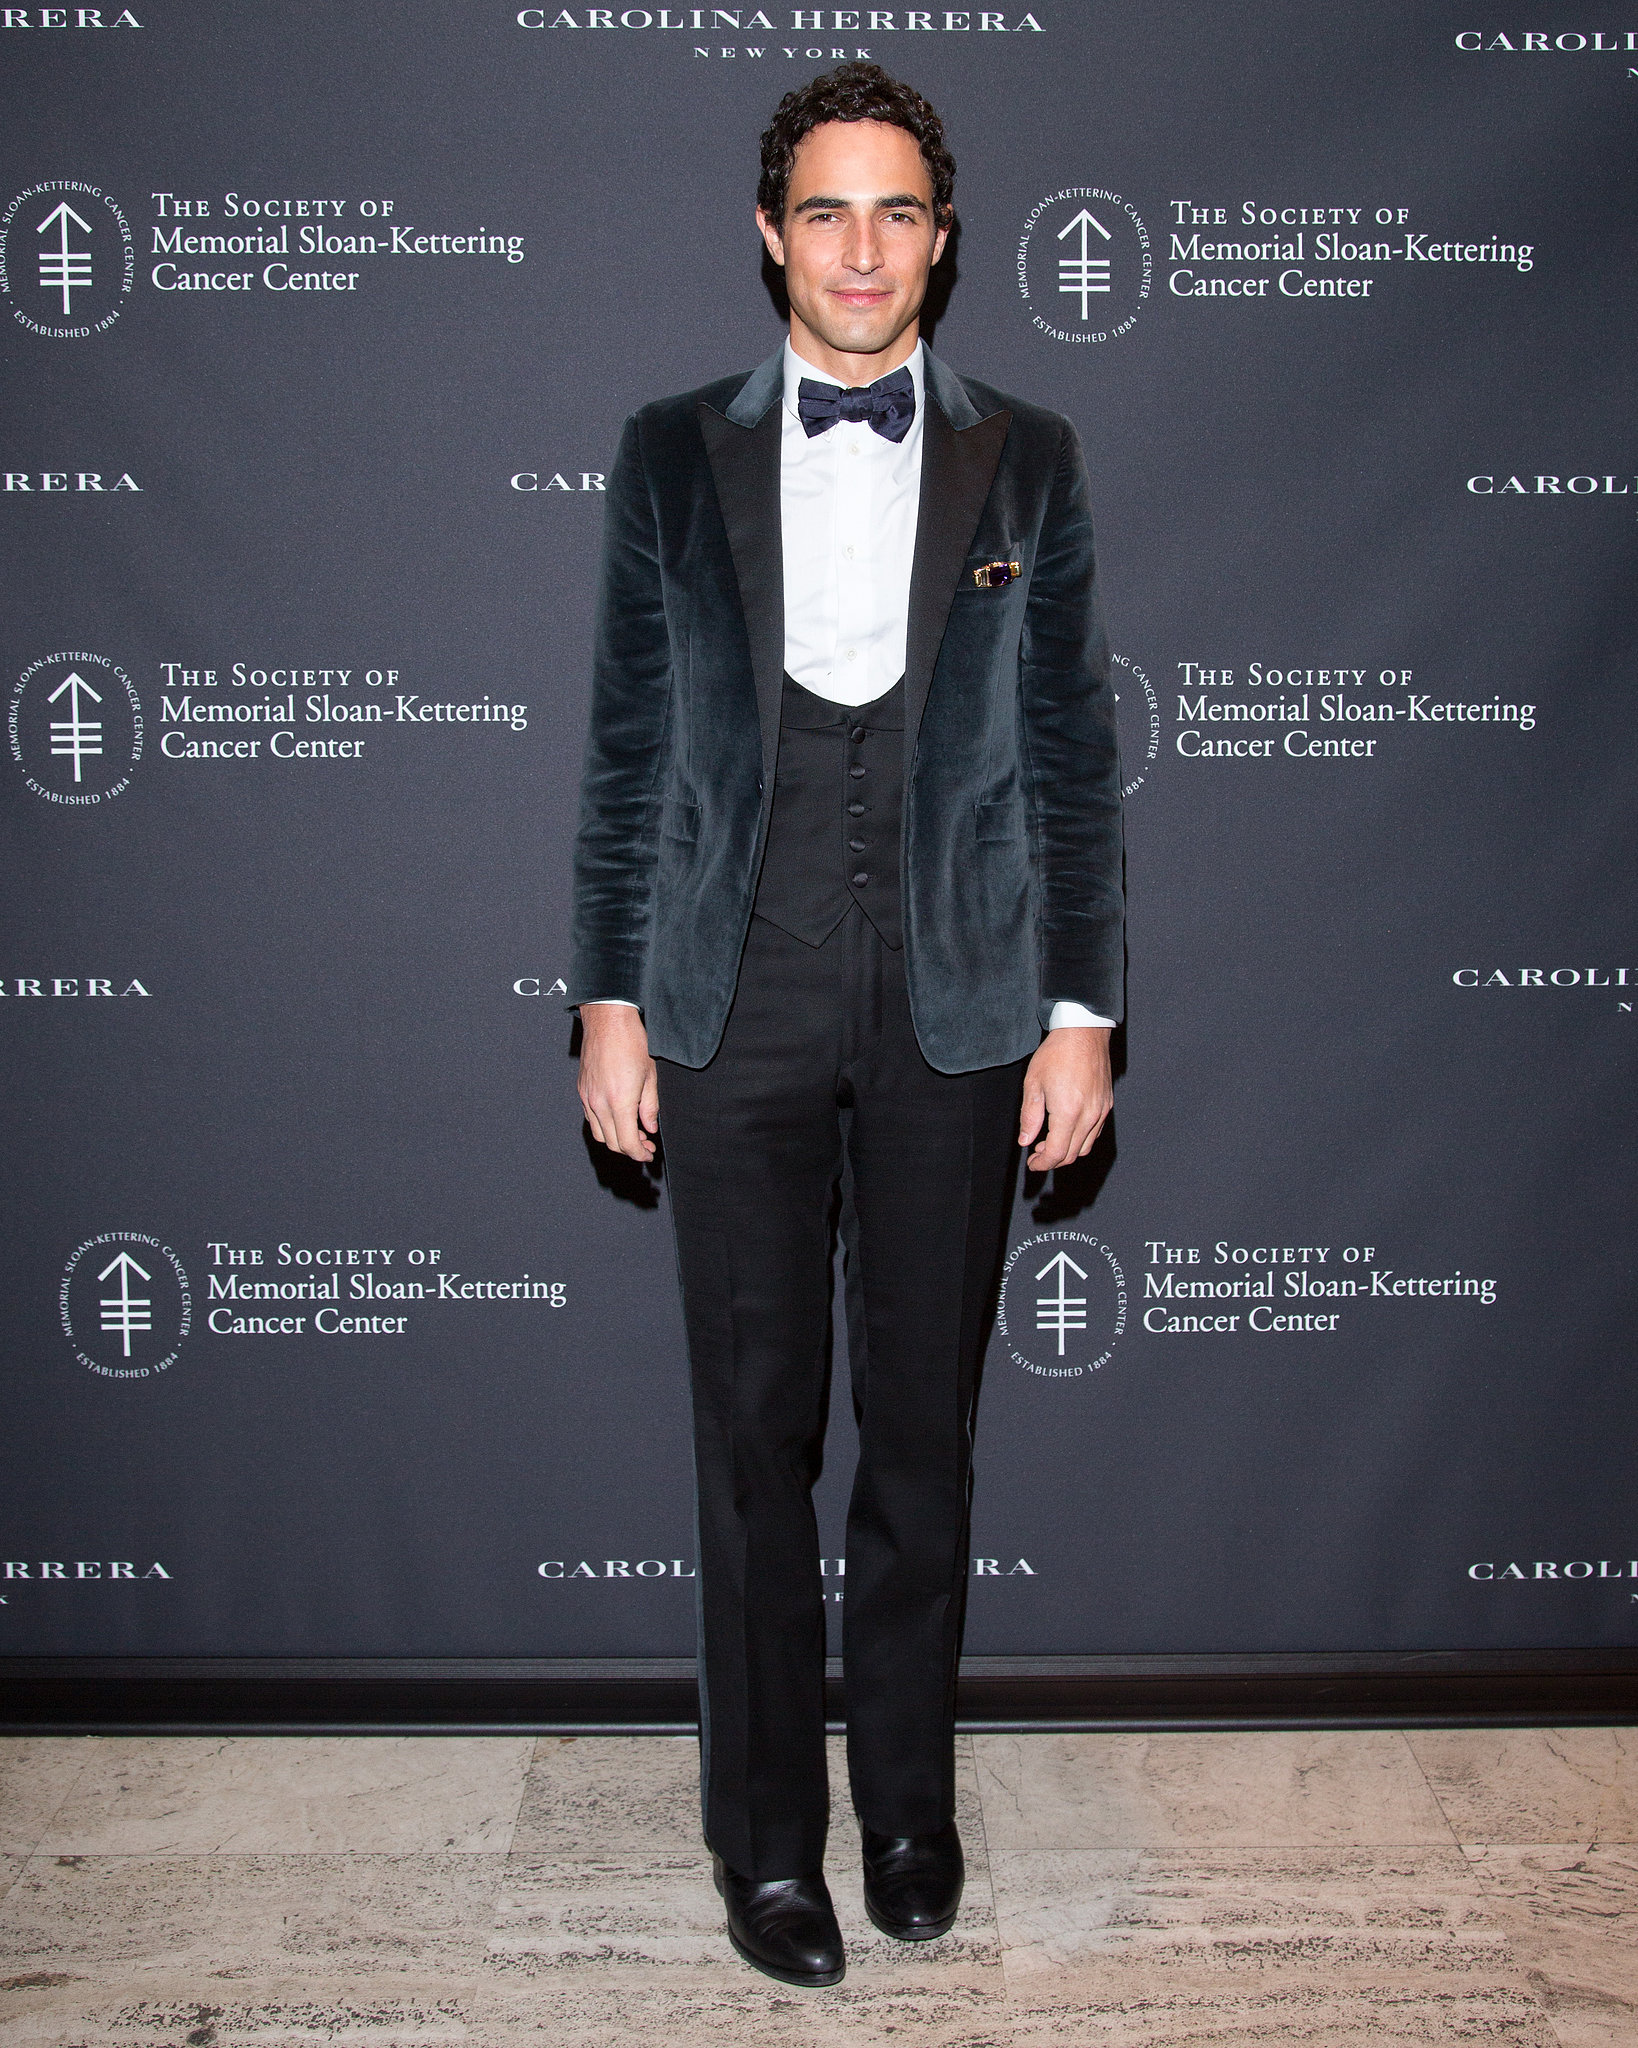 Zac Posen at The Society of Memorial Sloan-Kettering Cancer Cent